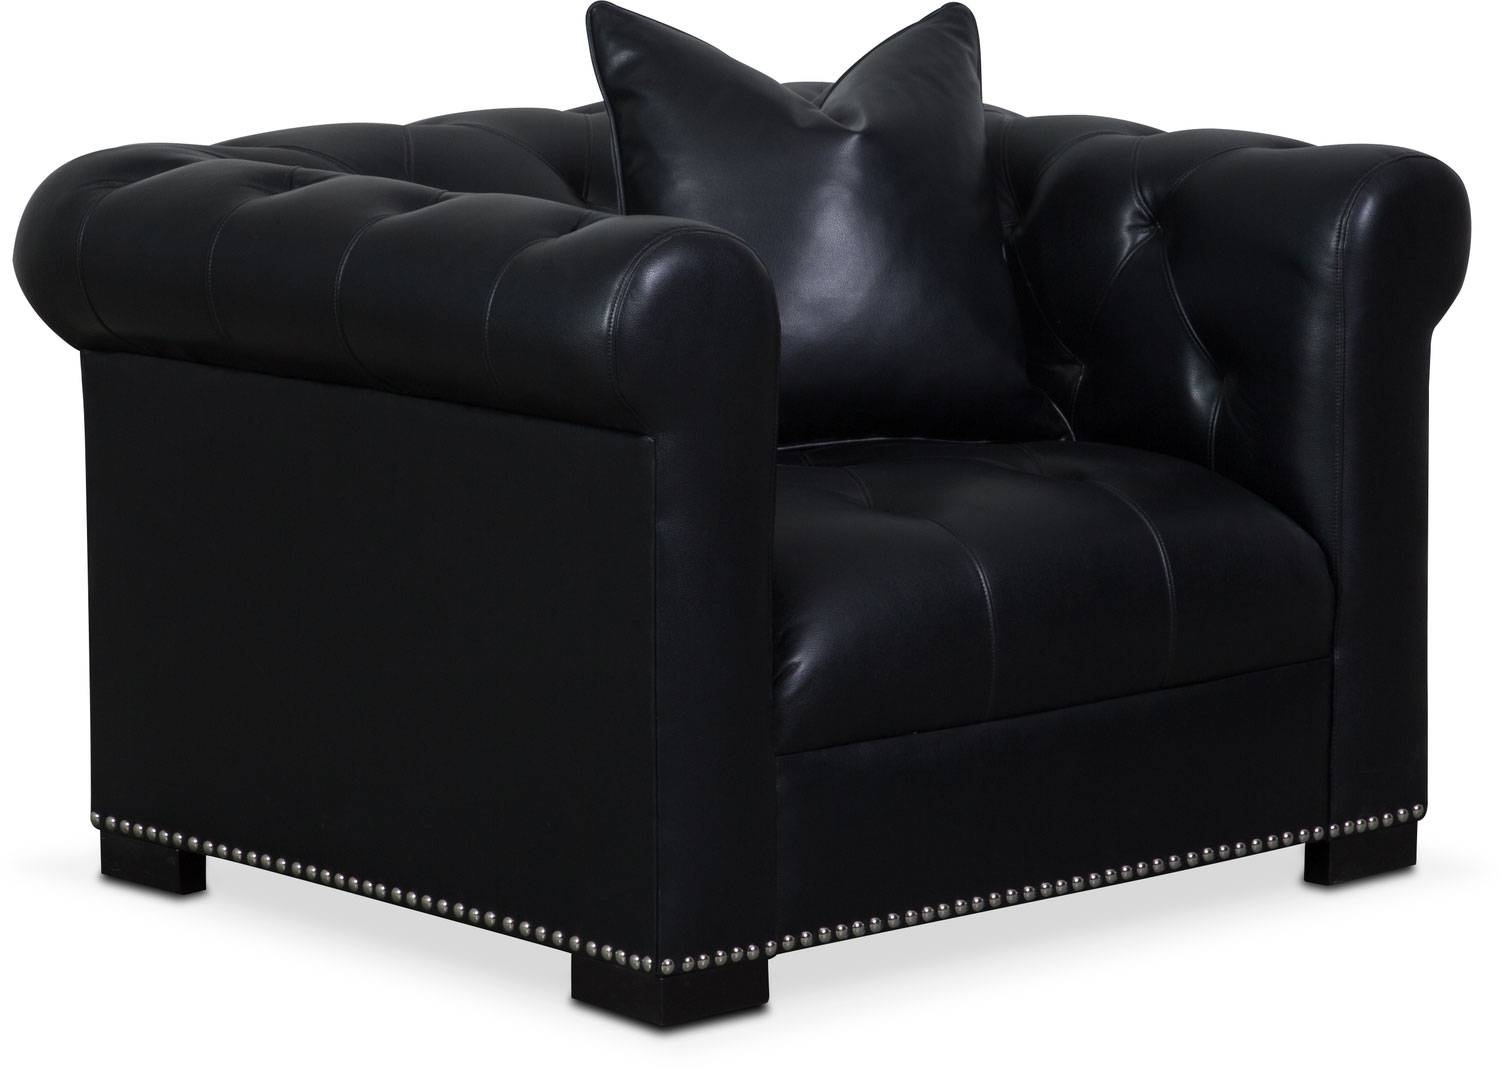 Couture Sofa, Chair And Swivel Chair Set - Black | Value City for Swivel Sofa Chairs (Image 10 of 30)